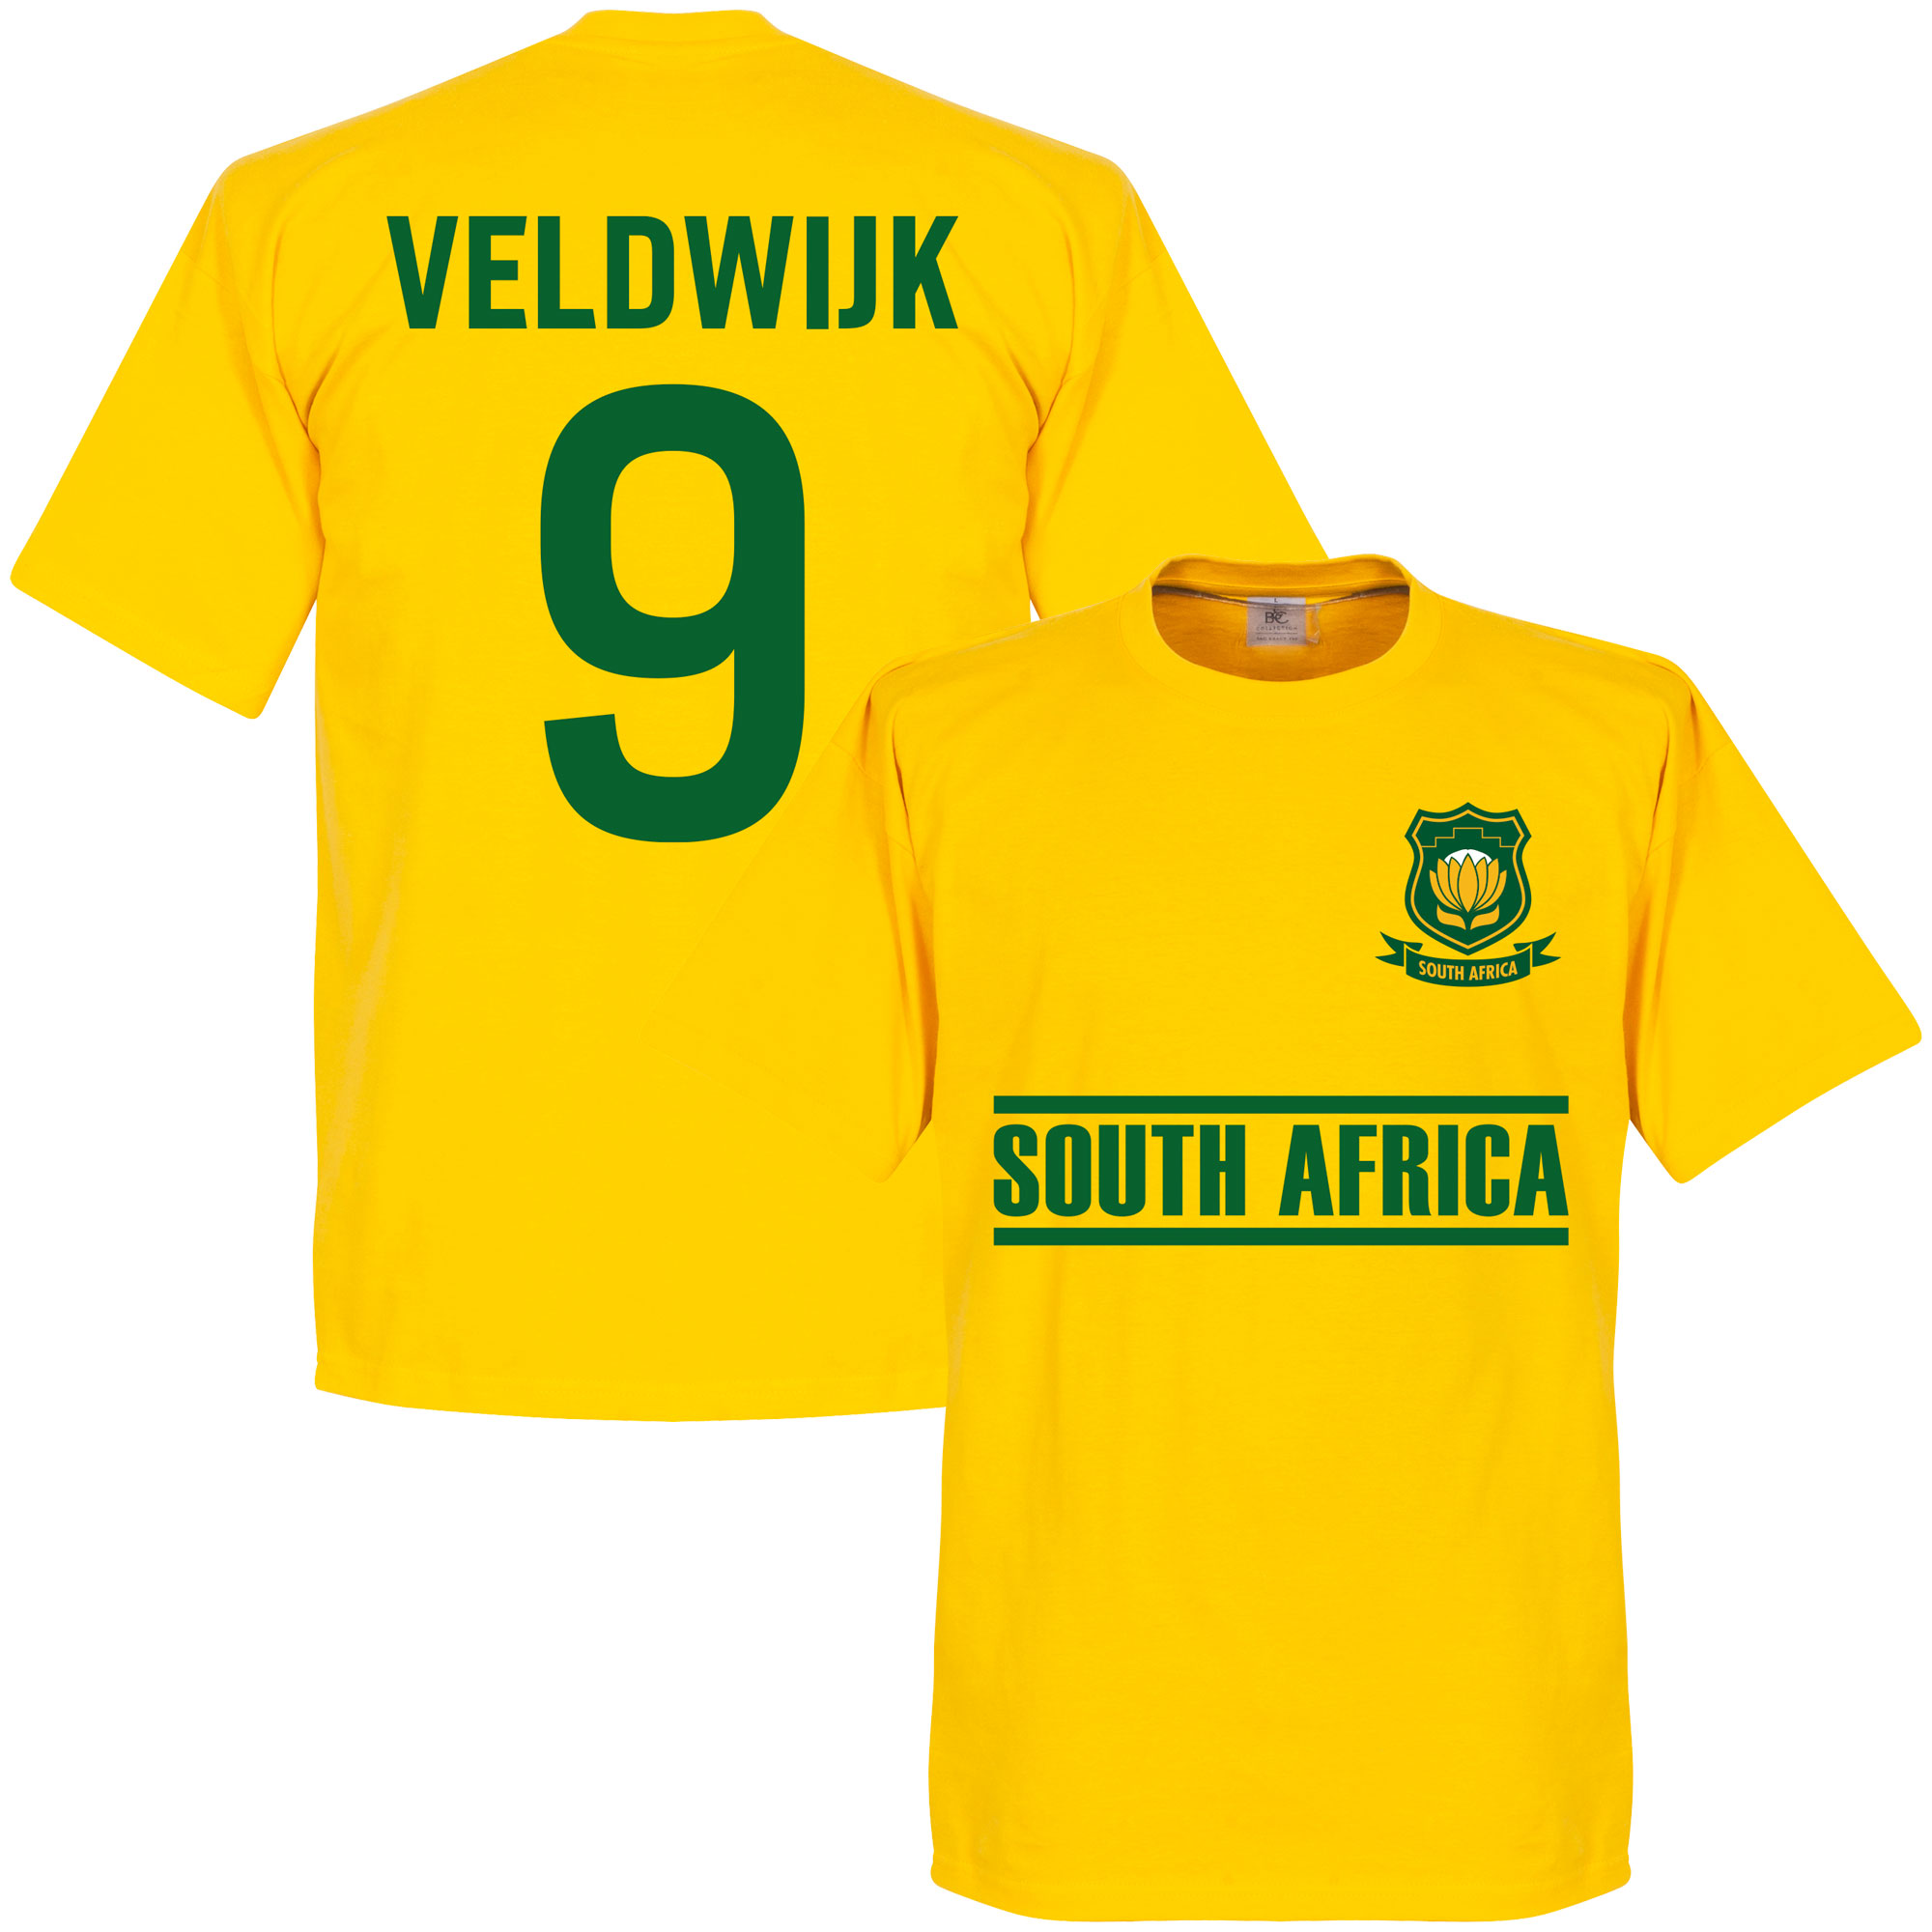 South Africa Veldwuk Team Tee - Yellow - L